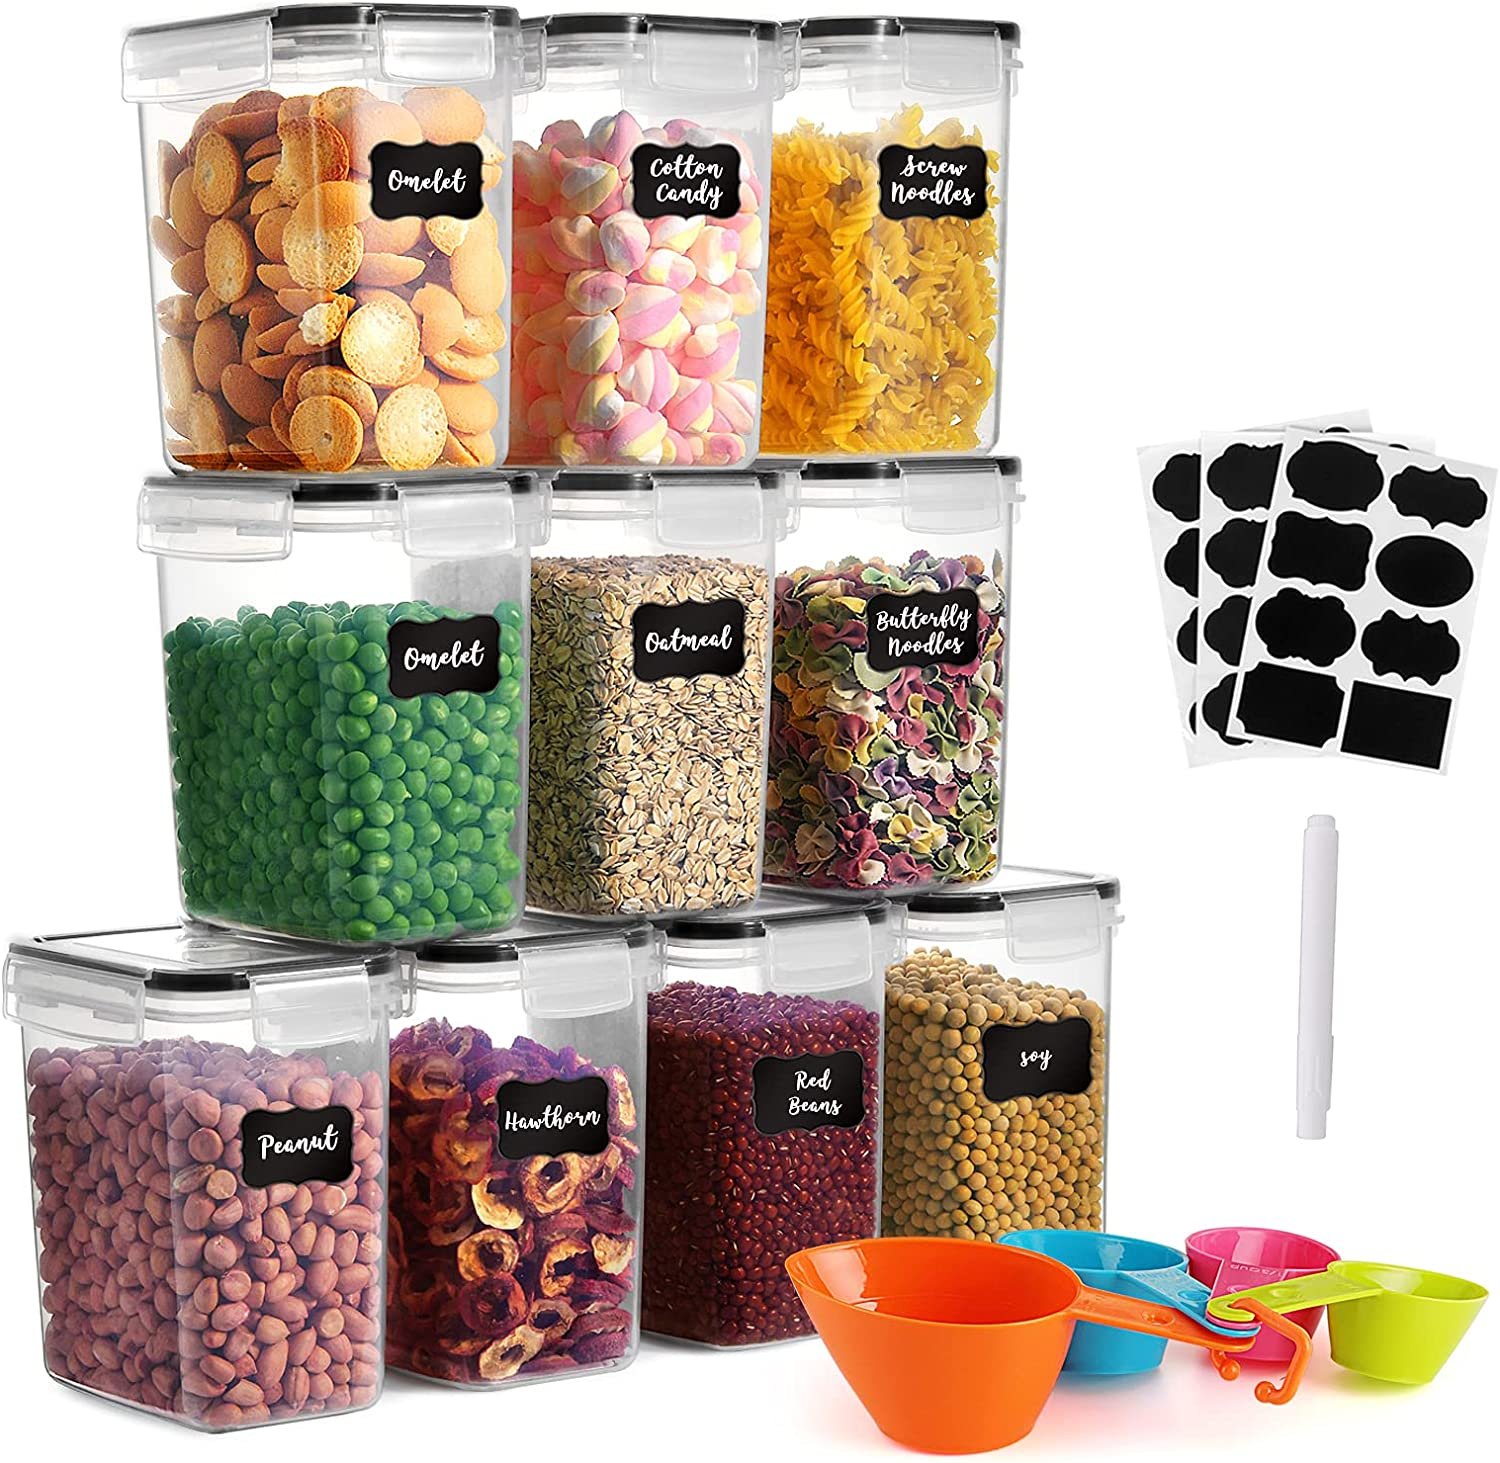 GoMaihe 1.6L Food Storage Containers 10 Pcs, Plastic Food Storage Containers with lids Airtight, Cereal Containers Storage set Suitable for Food, Cereal Kitchen Pantry Organization and Storage, Black